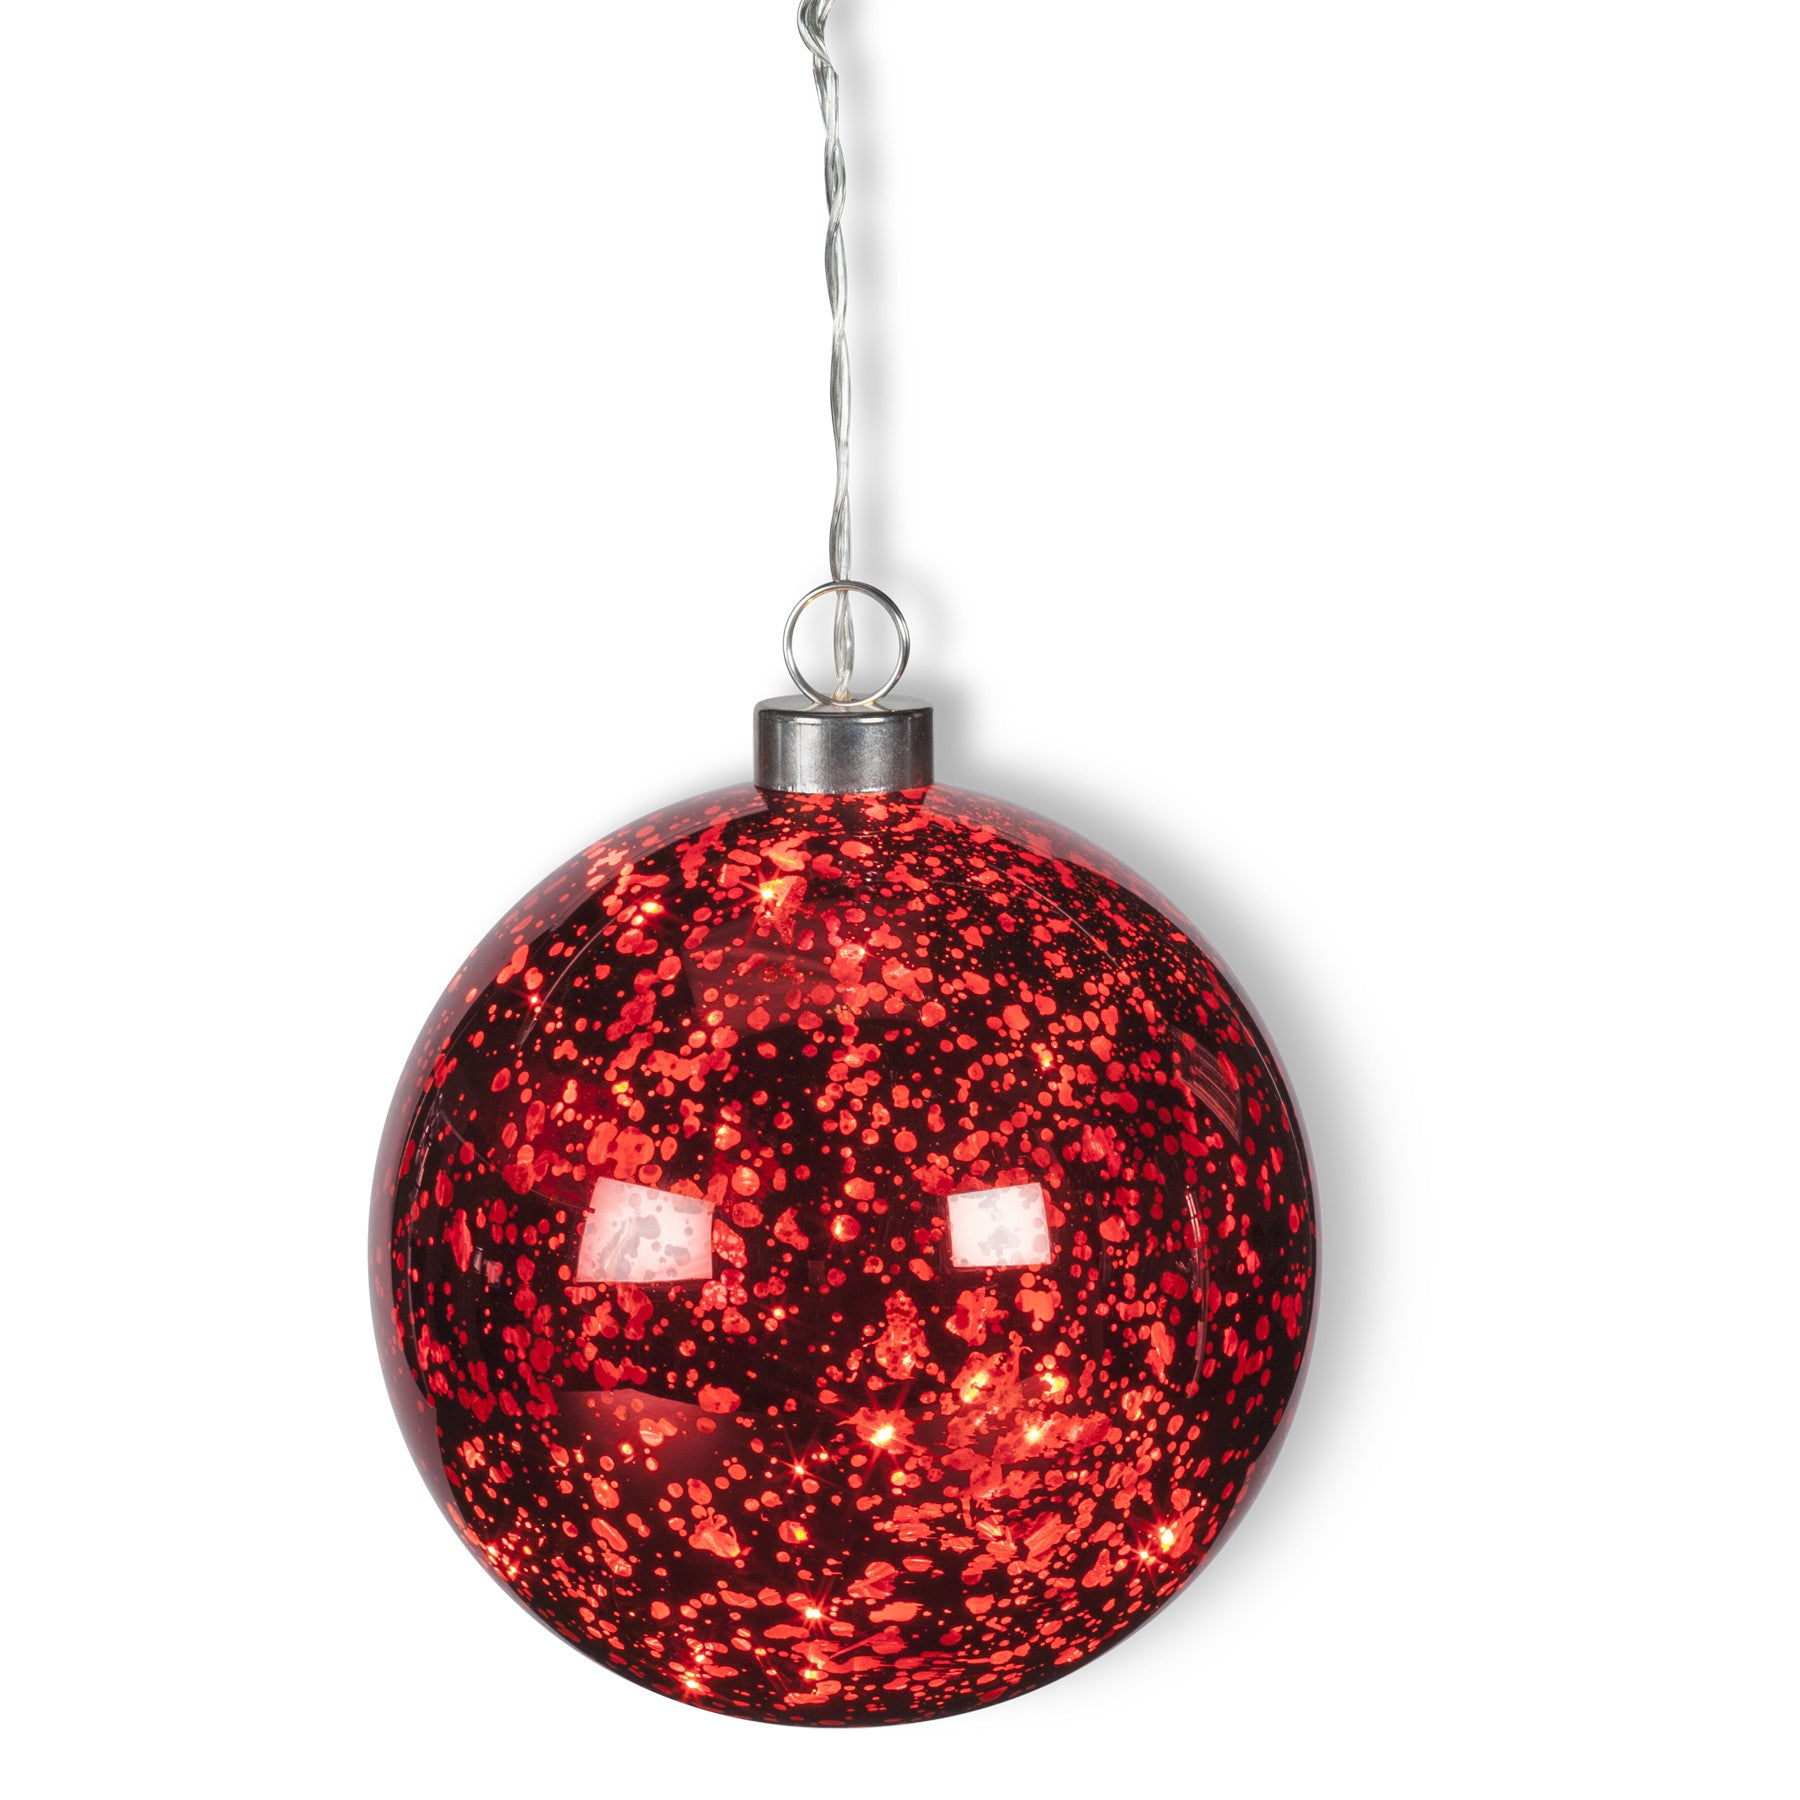 Hanging Ball LED Light - Red